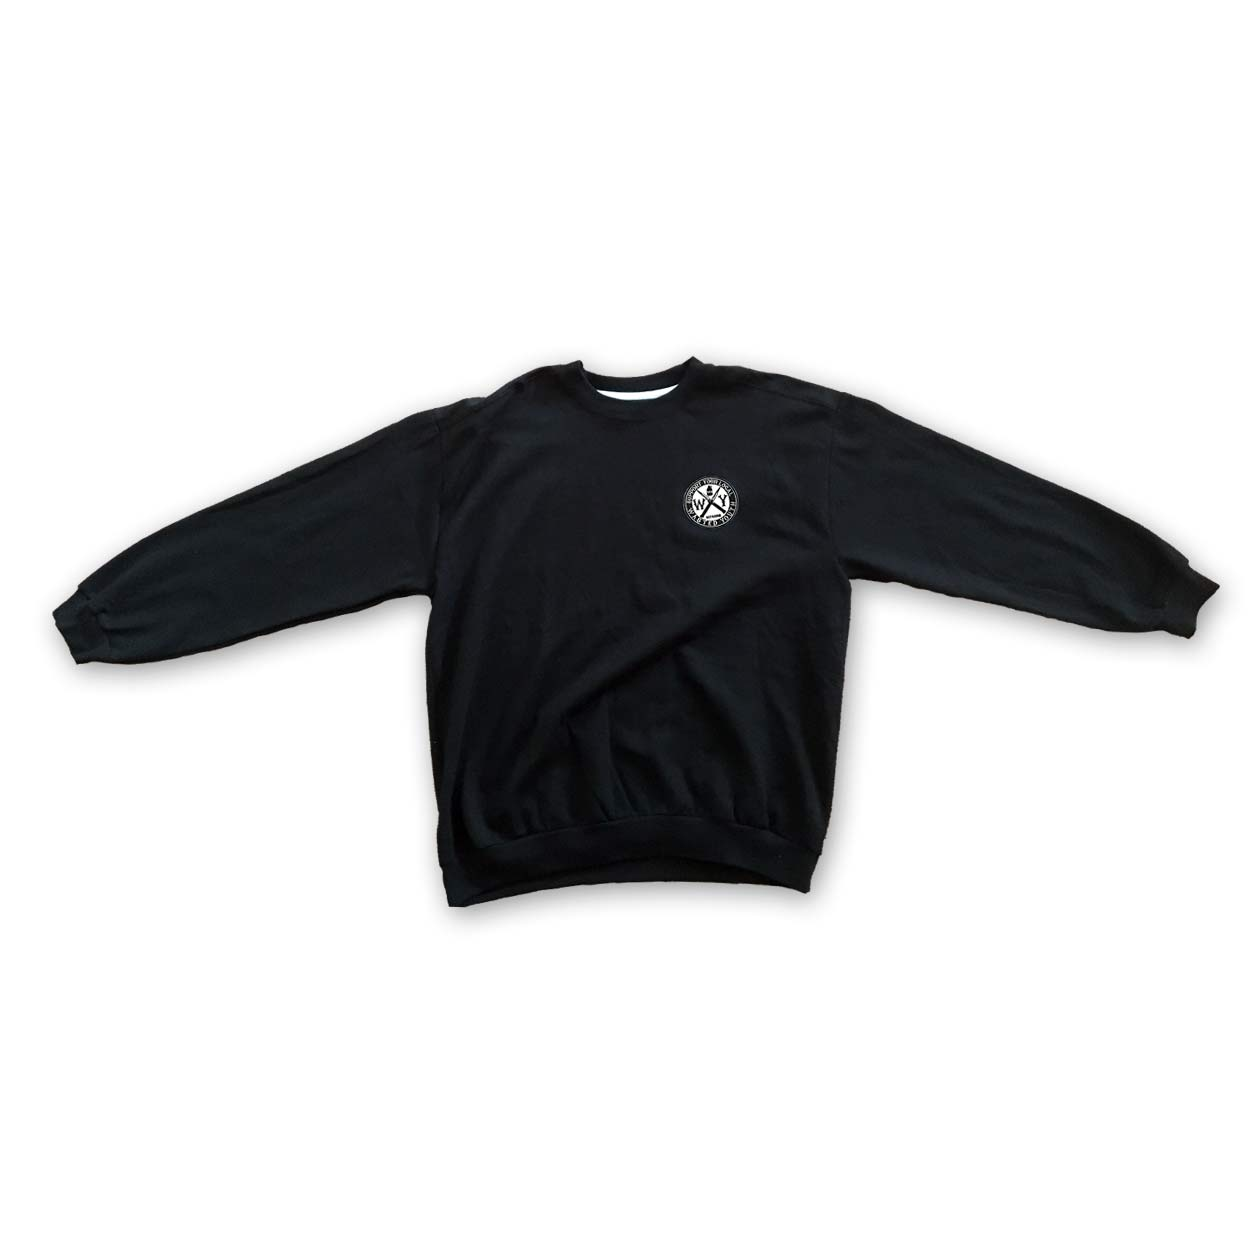 Support Patch Crew Neck Black